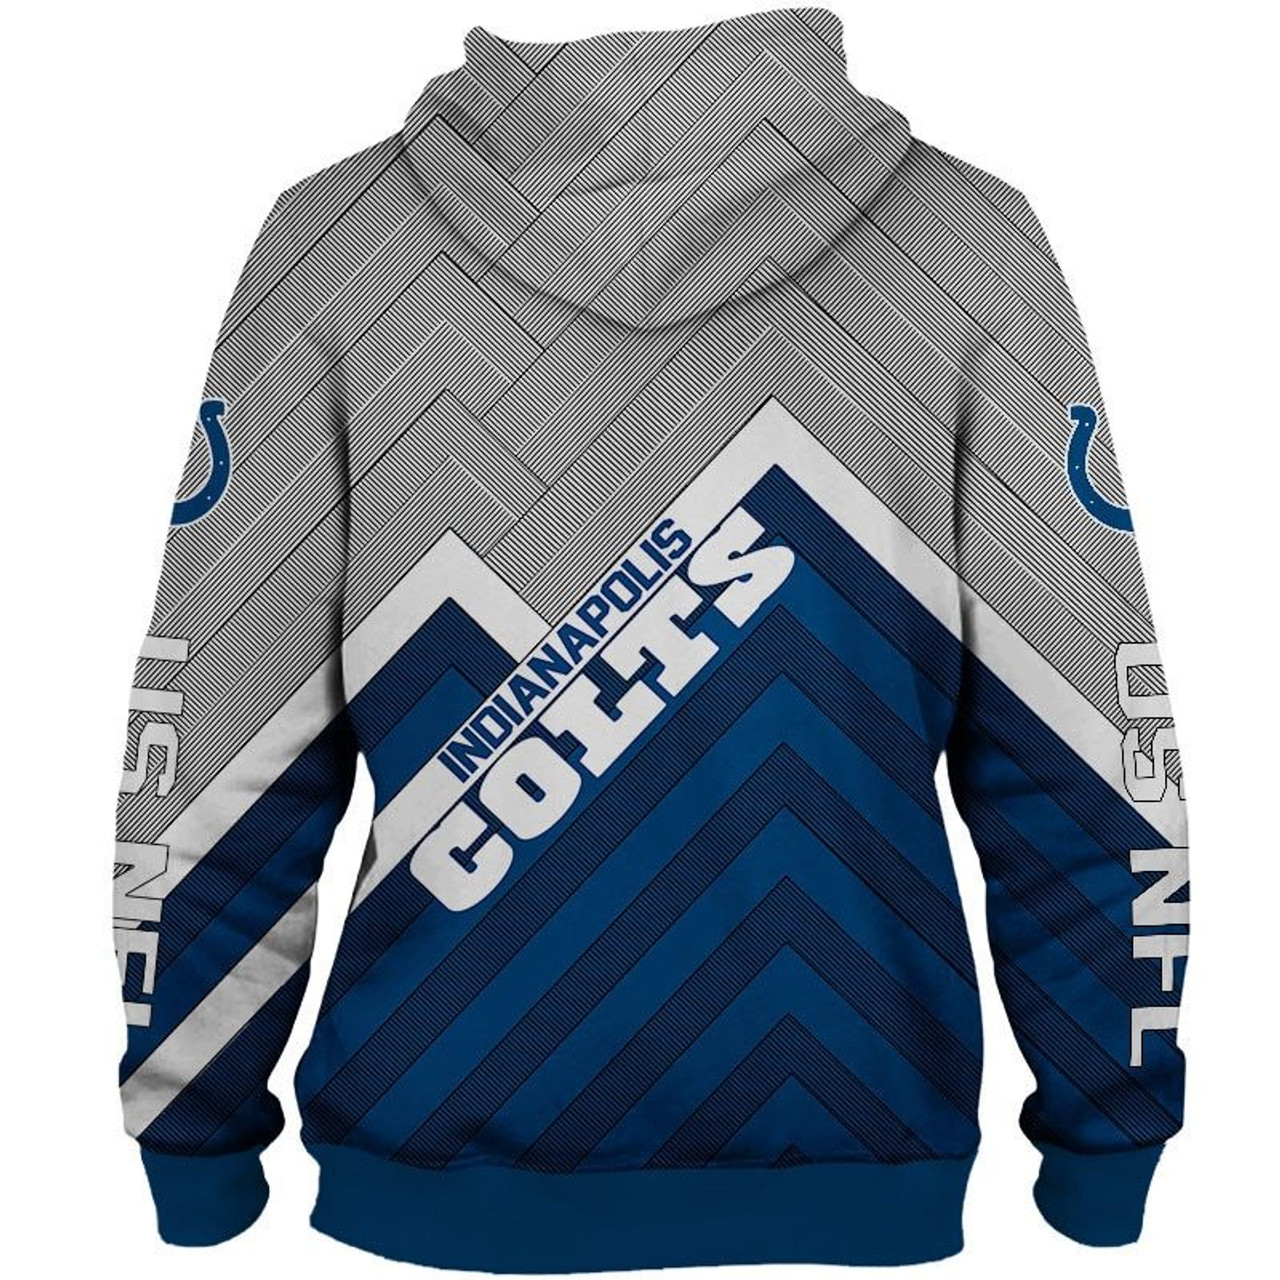 **(NEW-OFFICIAL-N.F.L.INDIANAPOLIS-COLTS-ZIPPERED-HOODIES/3D-CUSTOM-COLTS-LOGOS & OFFICIAL-COLTS-TEAM-COLORS/NICE-3D-DETAILED-GRAPHIC-PRINTED-DOUBLE-SIDED/ALL-OVER-ENTIRE-HOODIE-PRINTED-DESIGN/TRENDY-WARM-PREMIUM-COLTS-ZIPPERED-HOODIES)**